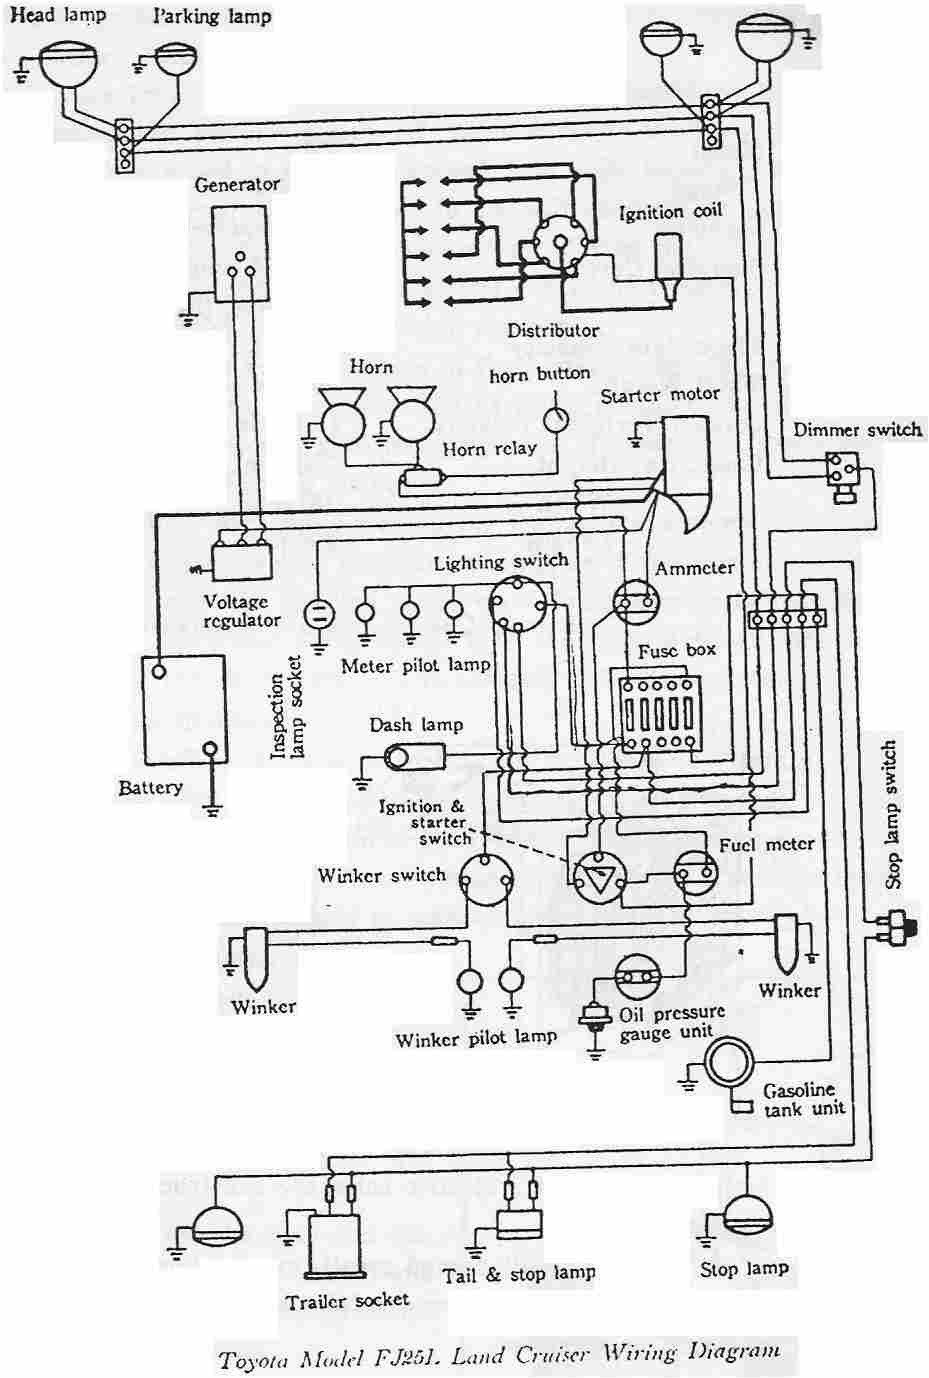 Awesome Typical Forklift Wiring Diagram Embellishment Wiring